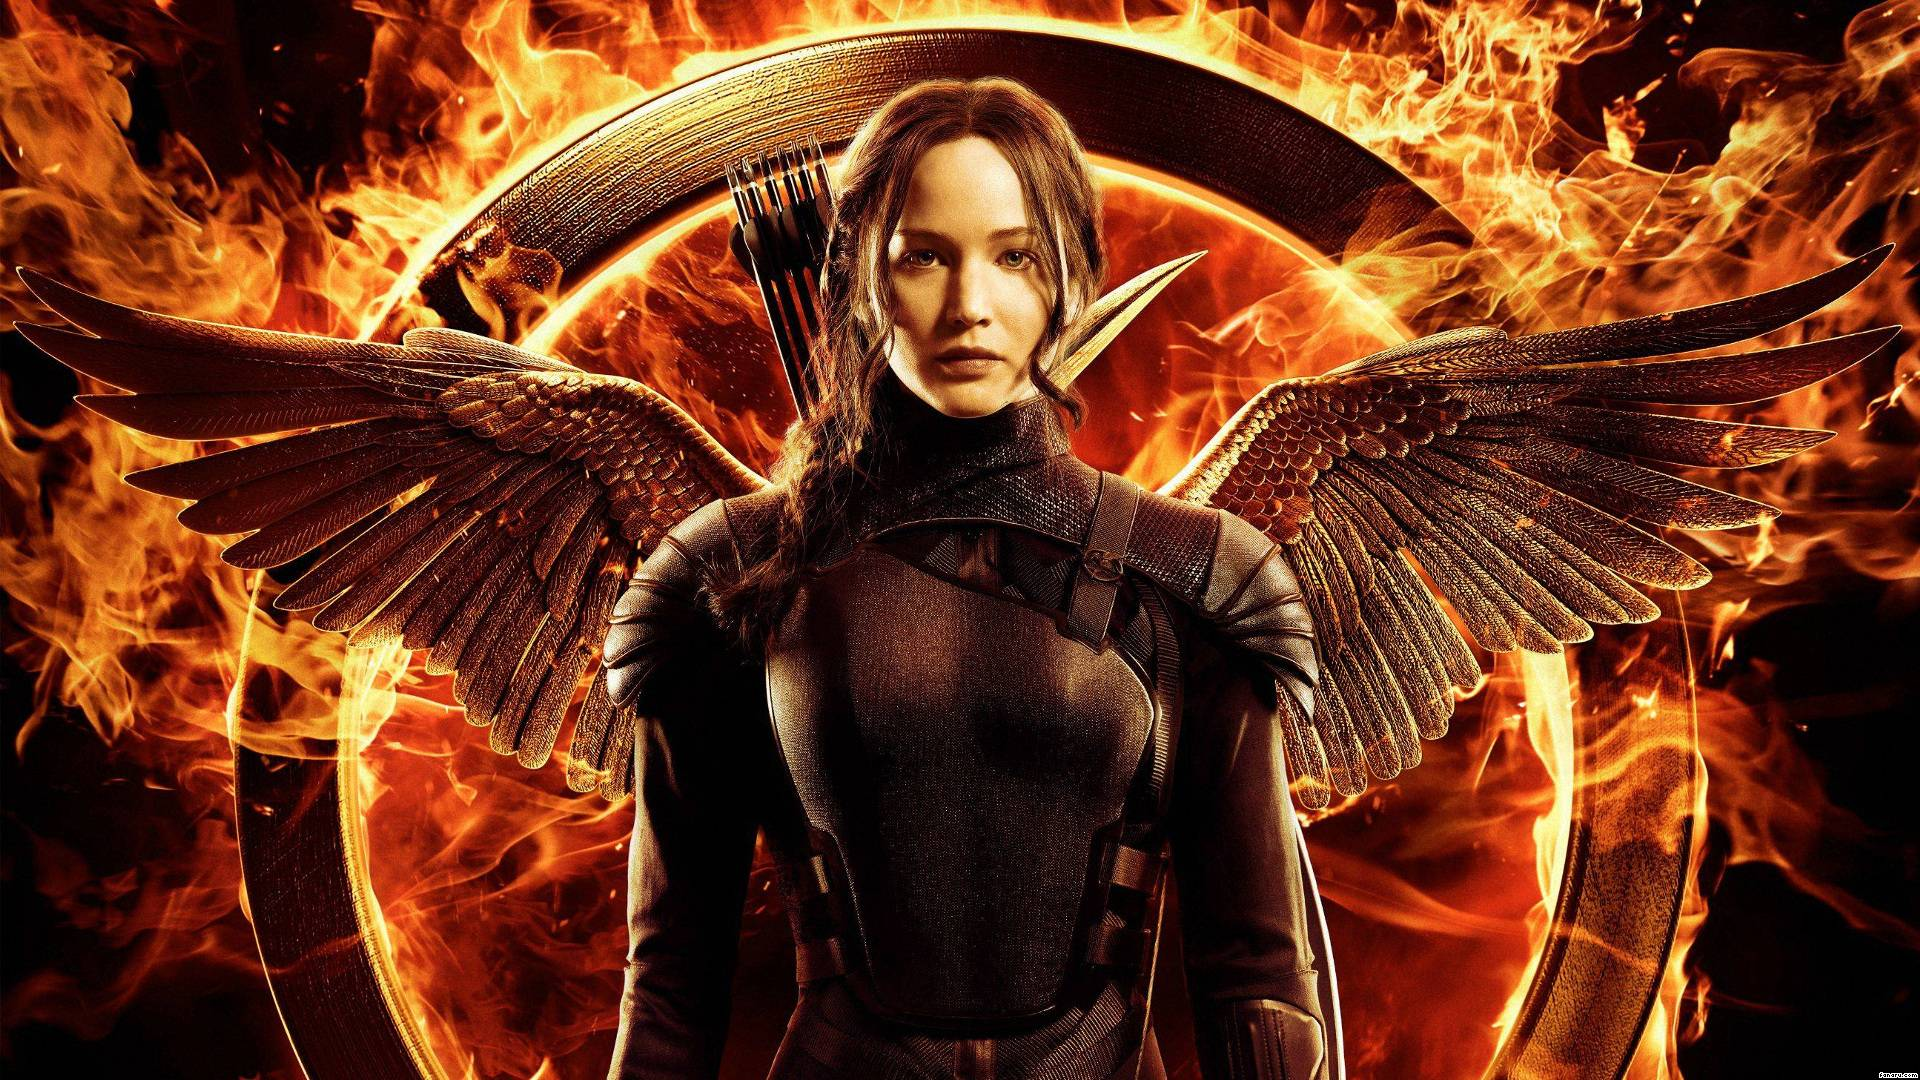 69544-hunger-games-mockingjay-part-1-the-hunger-games-mockingjay-part-1-wallpaper